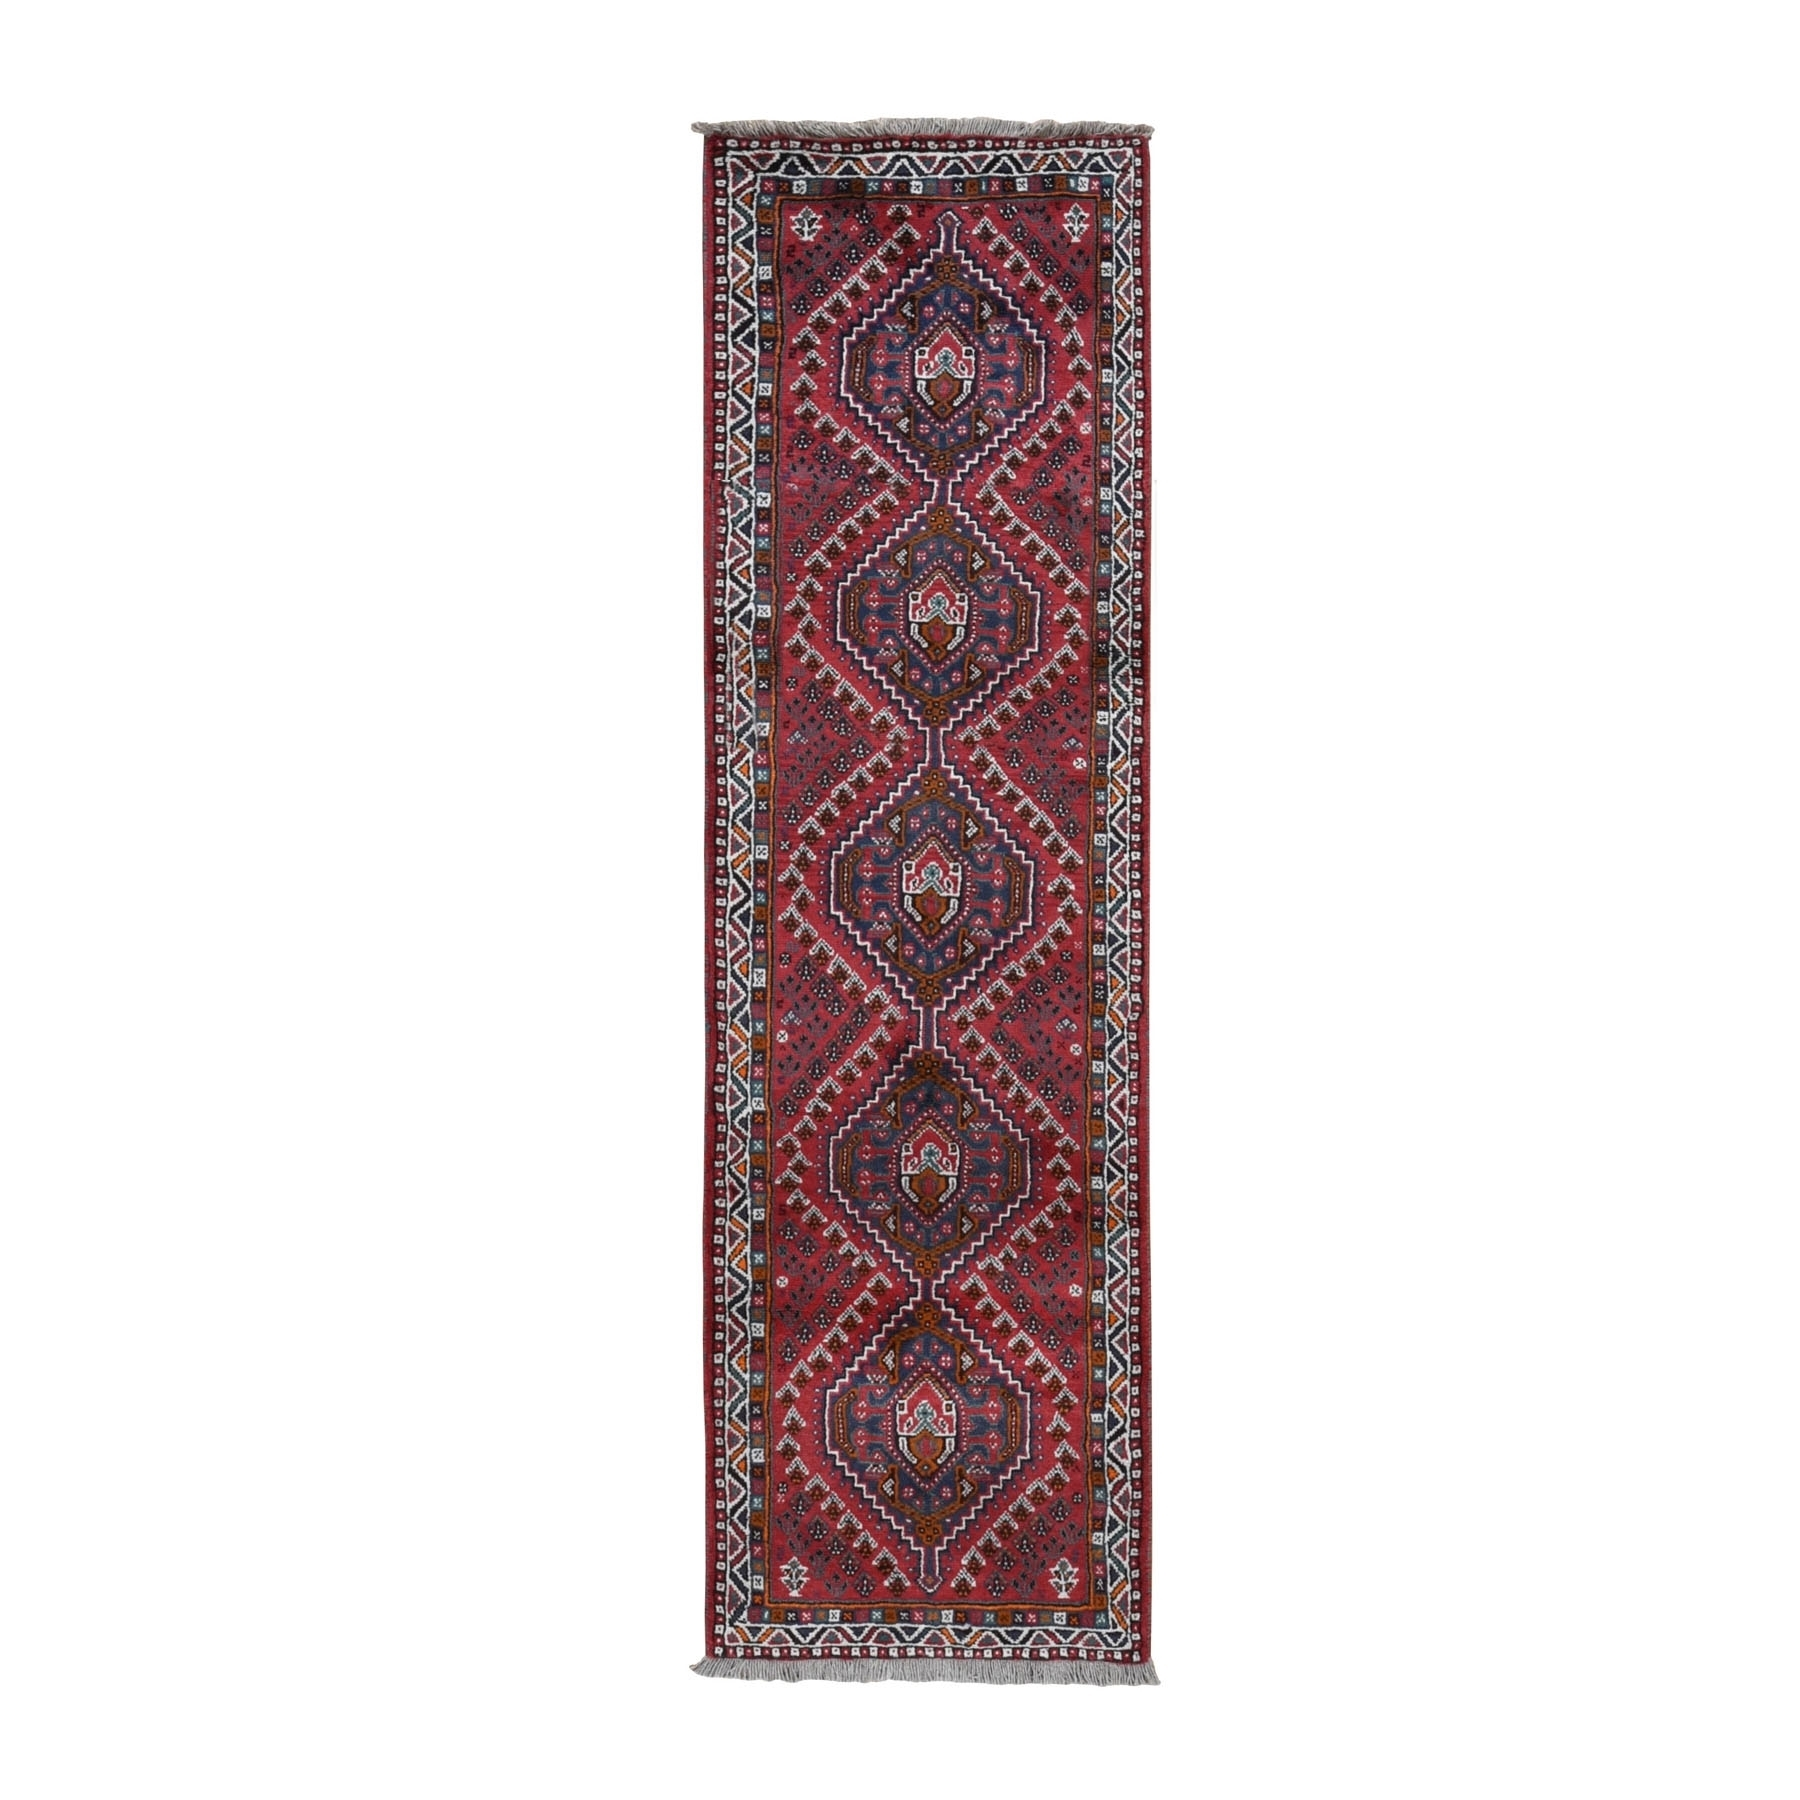 "2'9""x9'7"" Red New Persian Shiraz Pure Wool Runner Hand Knotted Tribal Design Bohemian Rug"